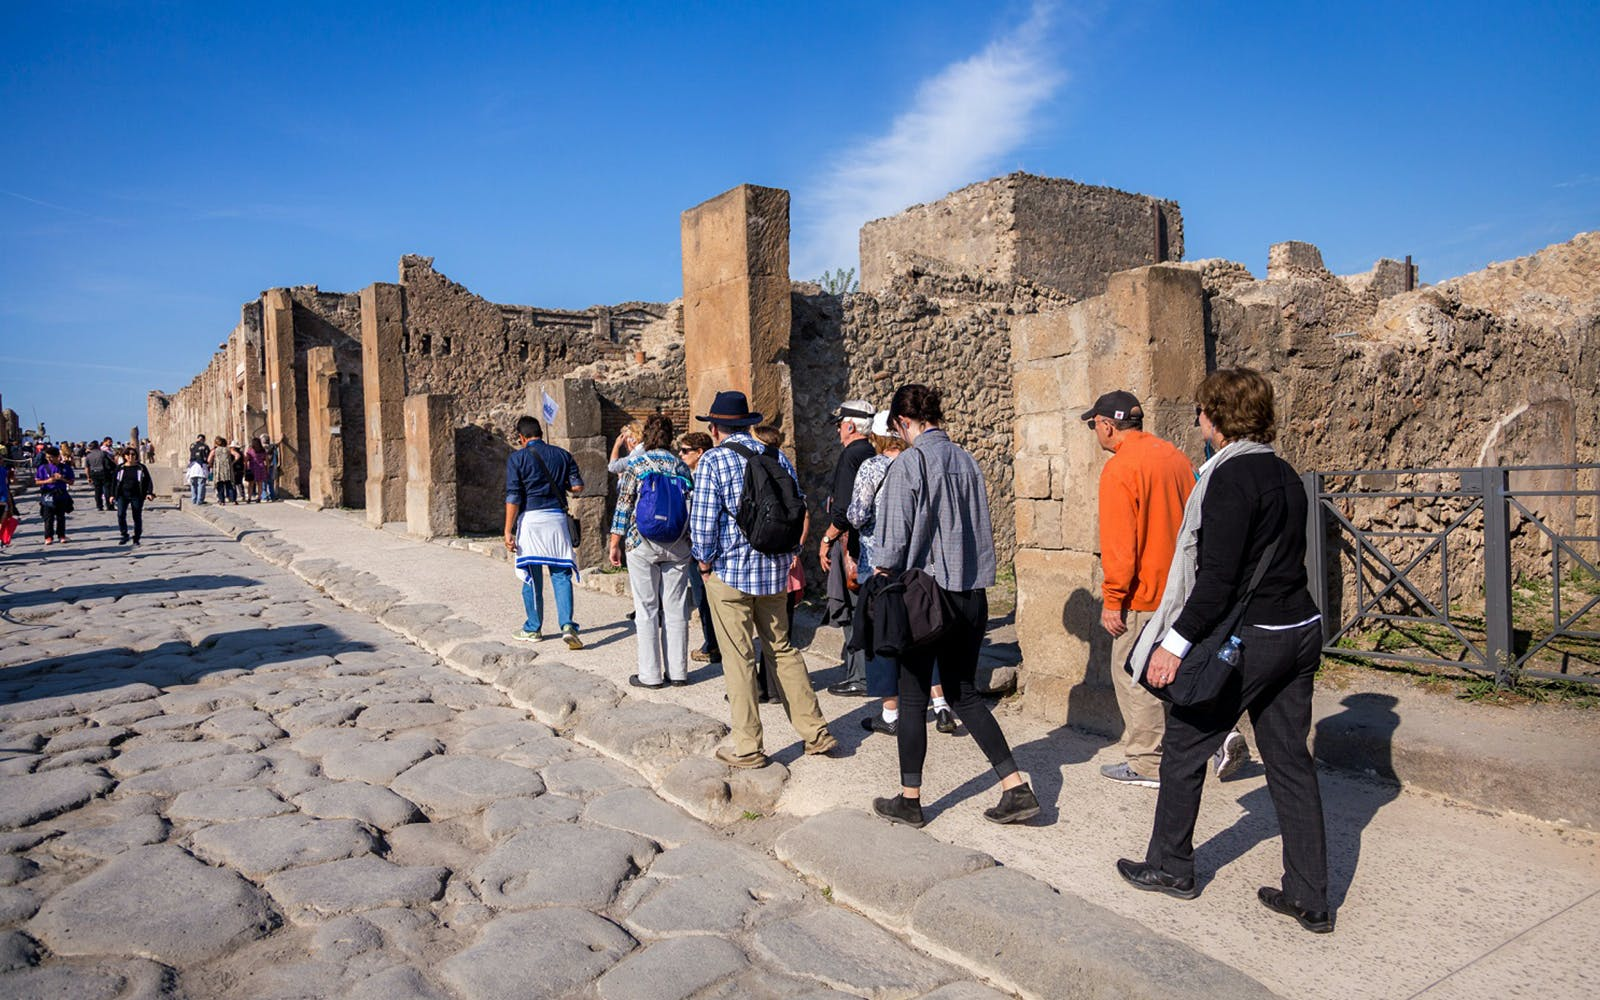 pompeii and mt. vesuvius volcano full day trip from rome-6